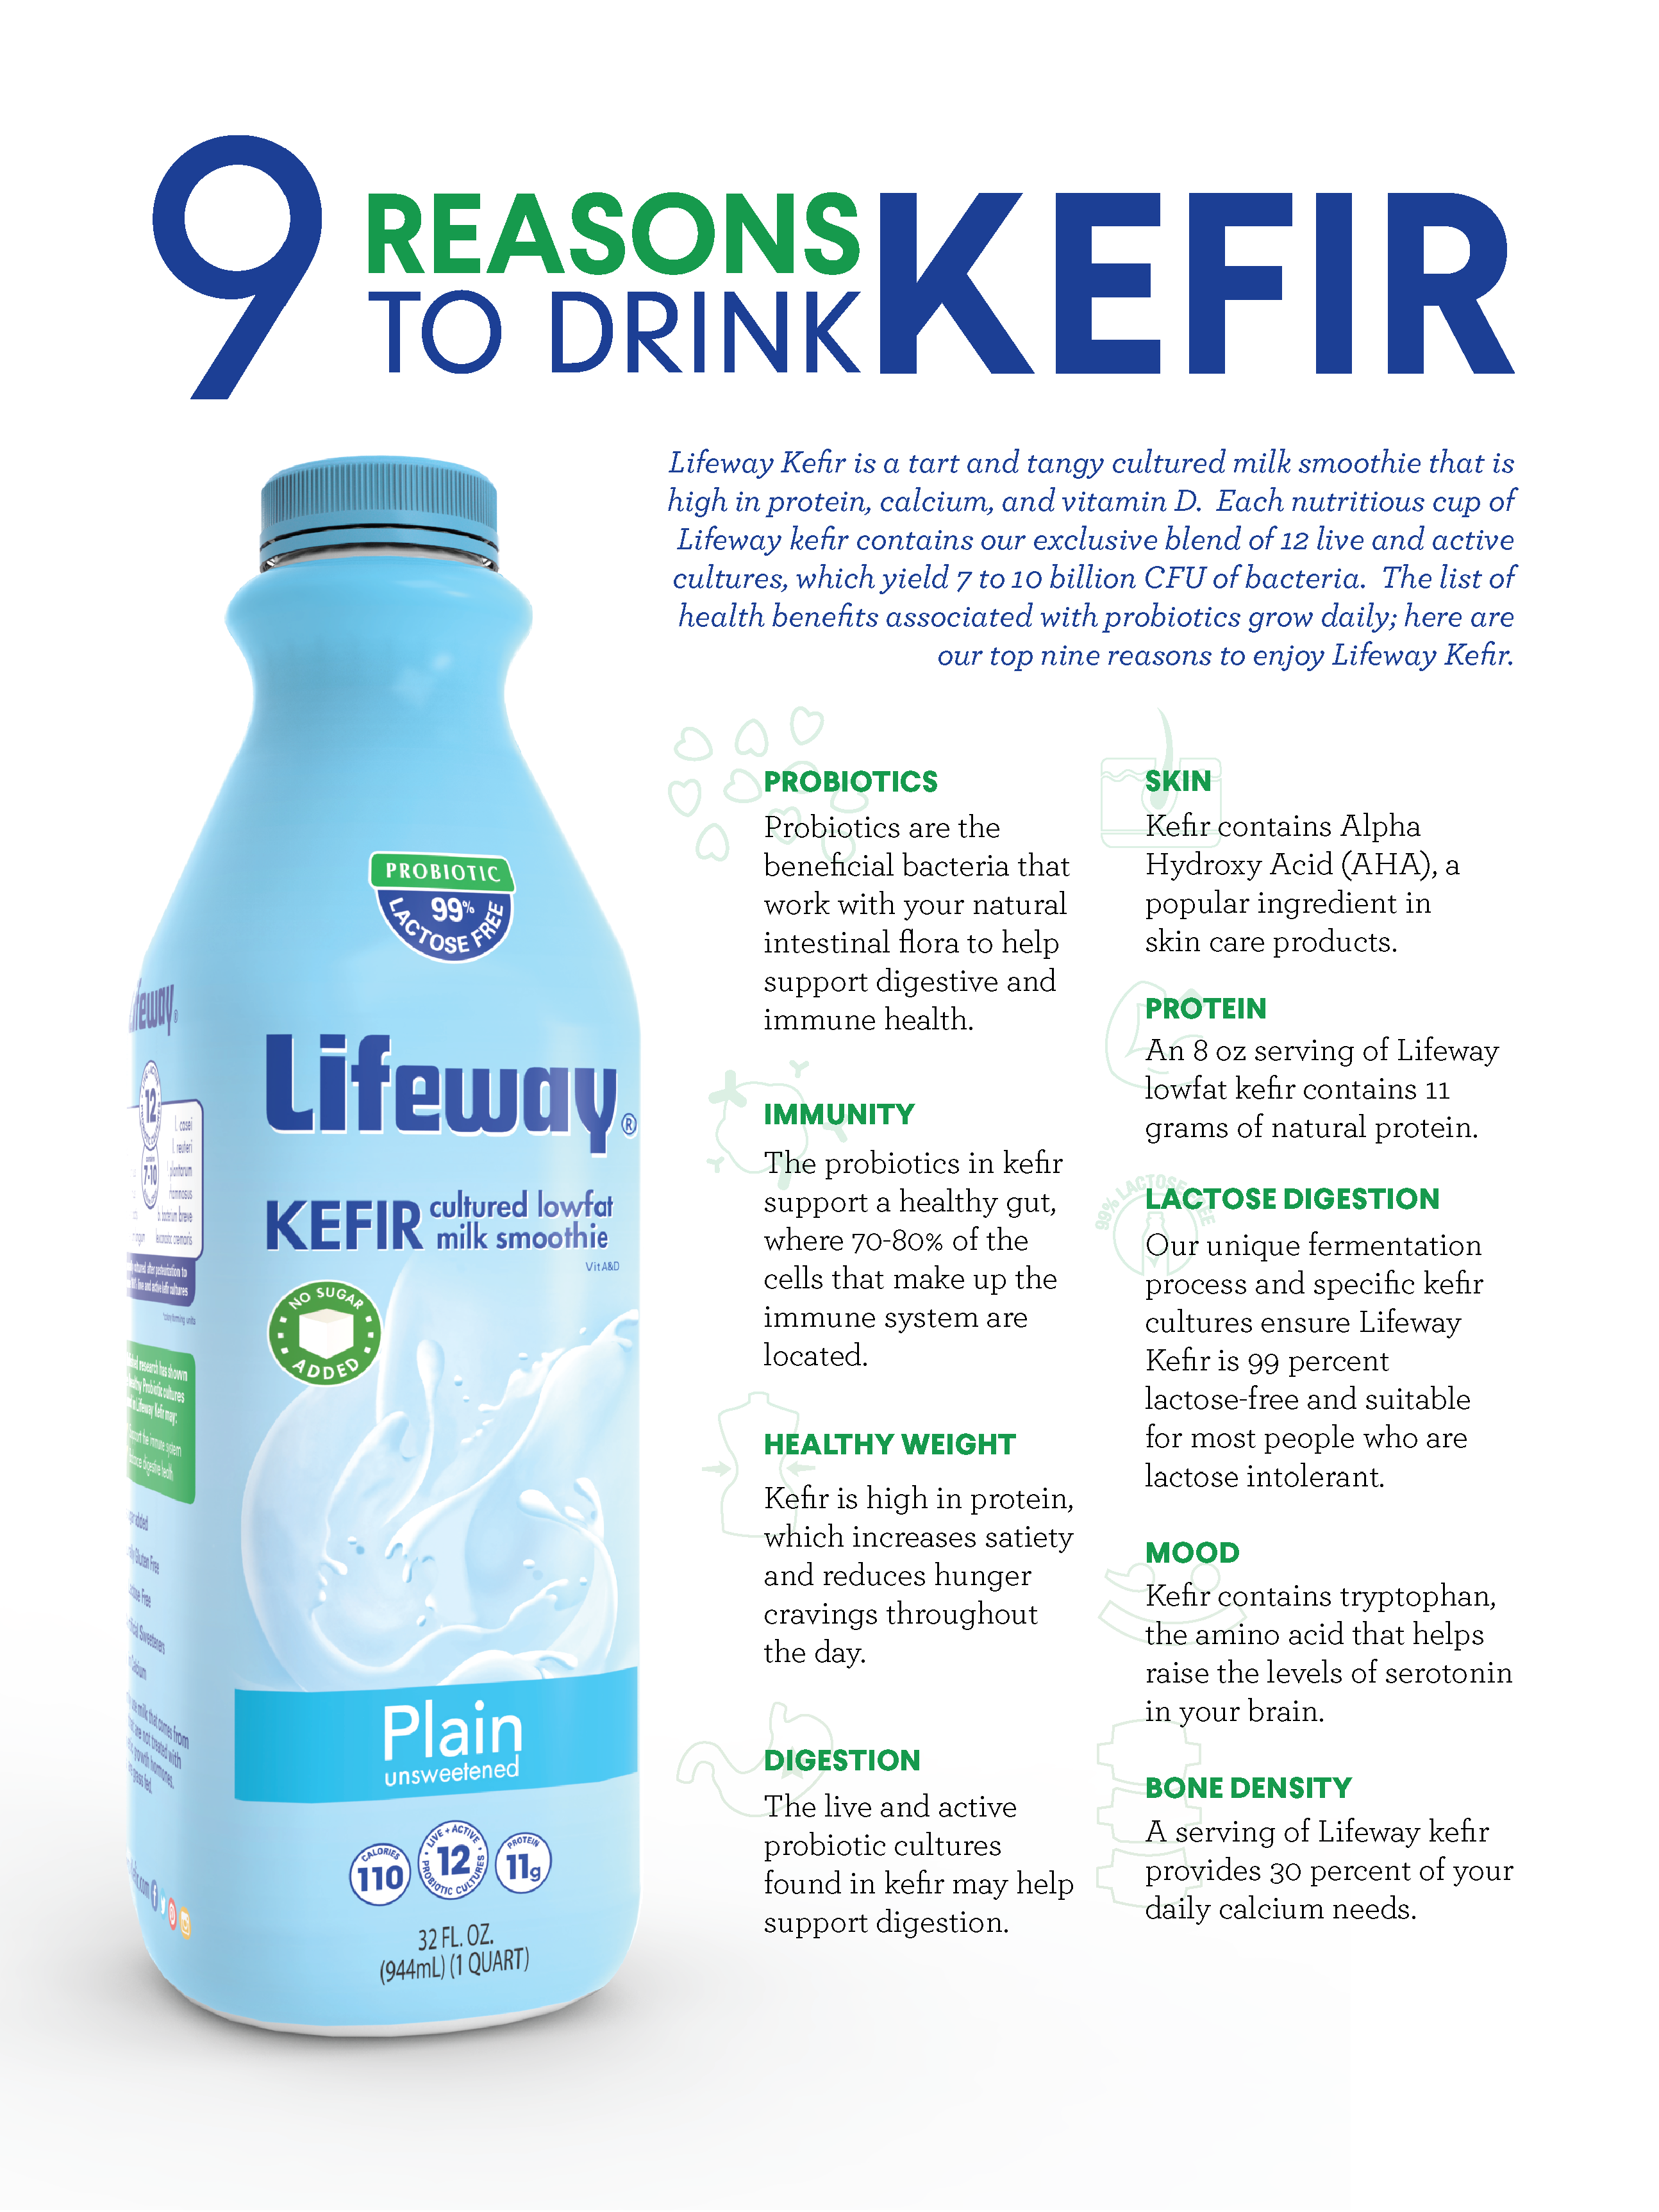 How Much Kefir A Day Should You Drink